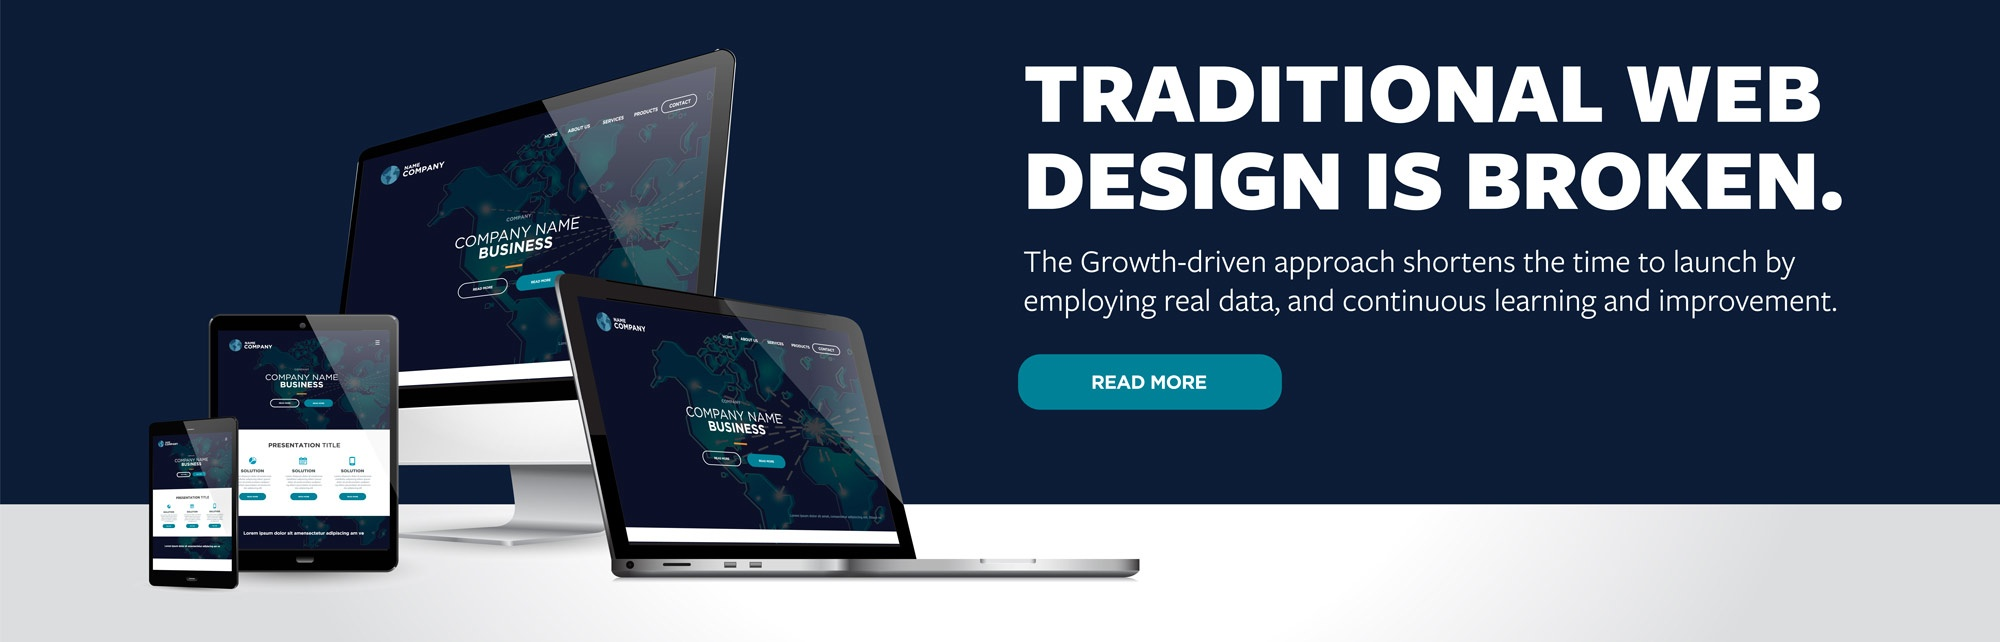 Image-link-about-growth-driven-web-design-back9-creative